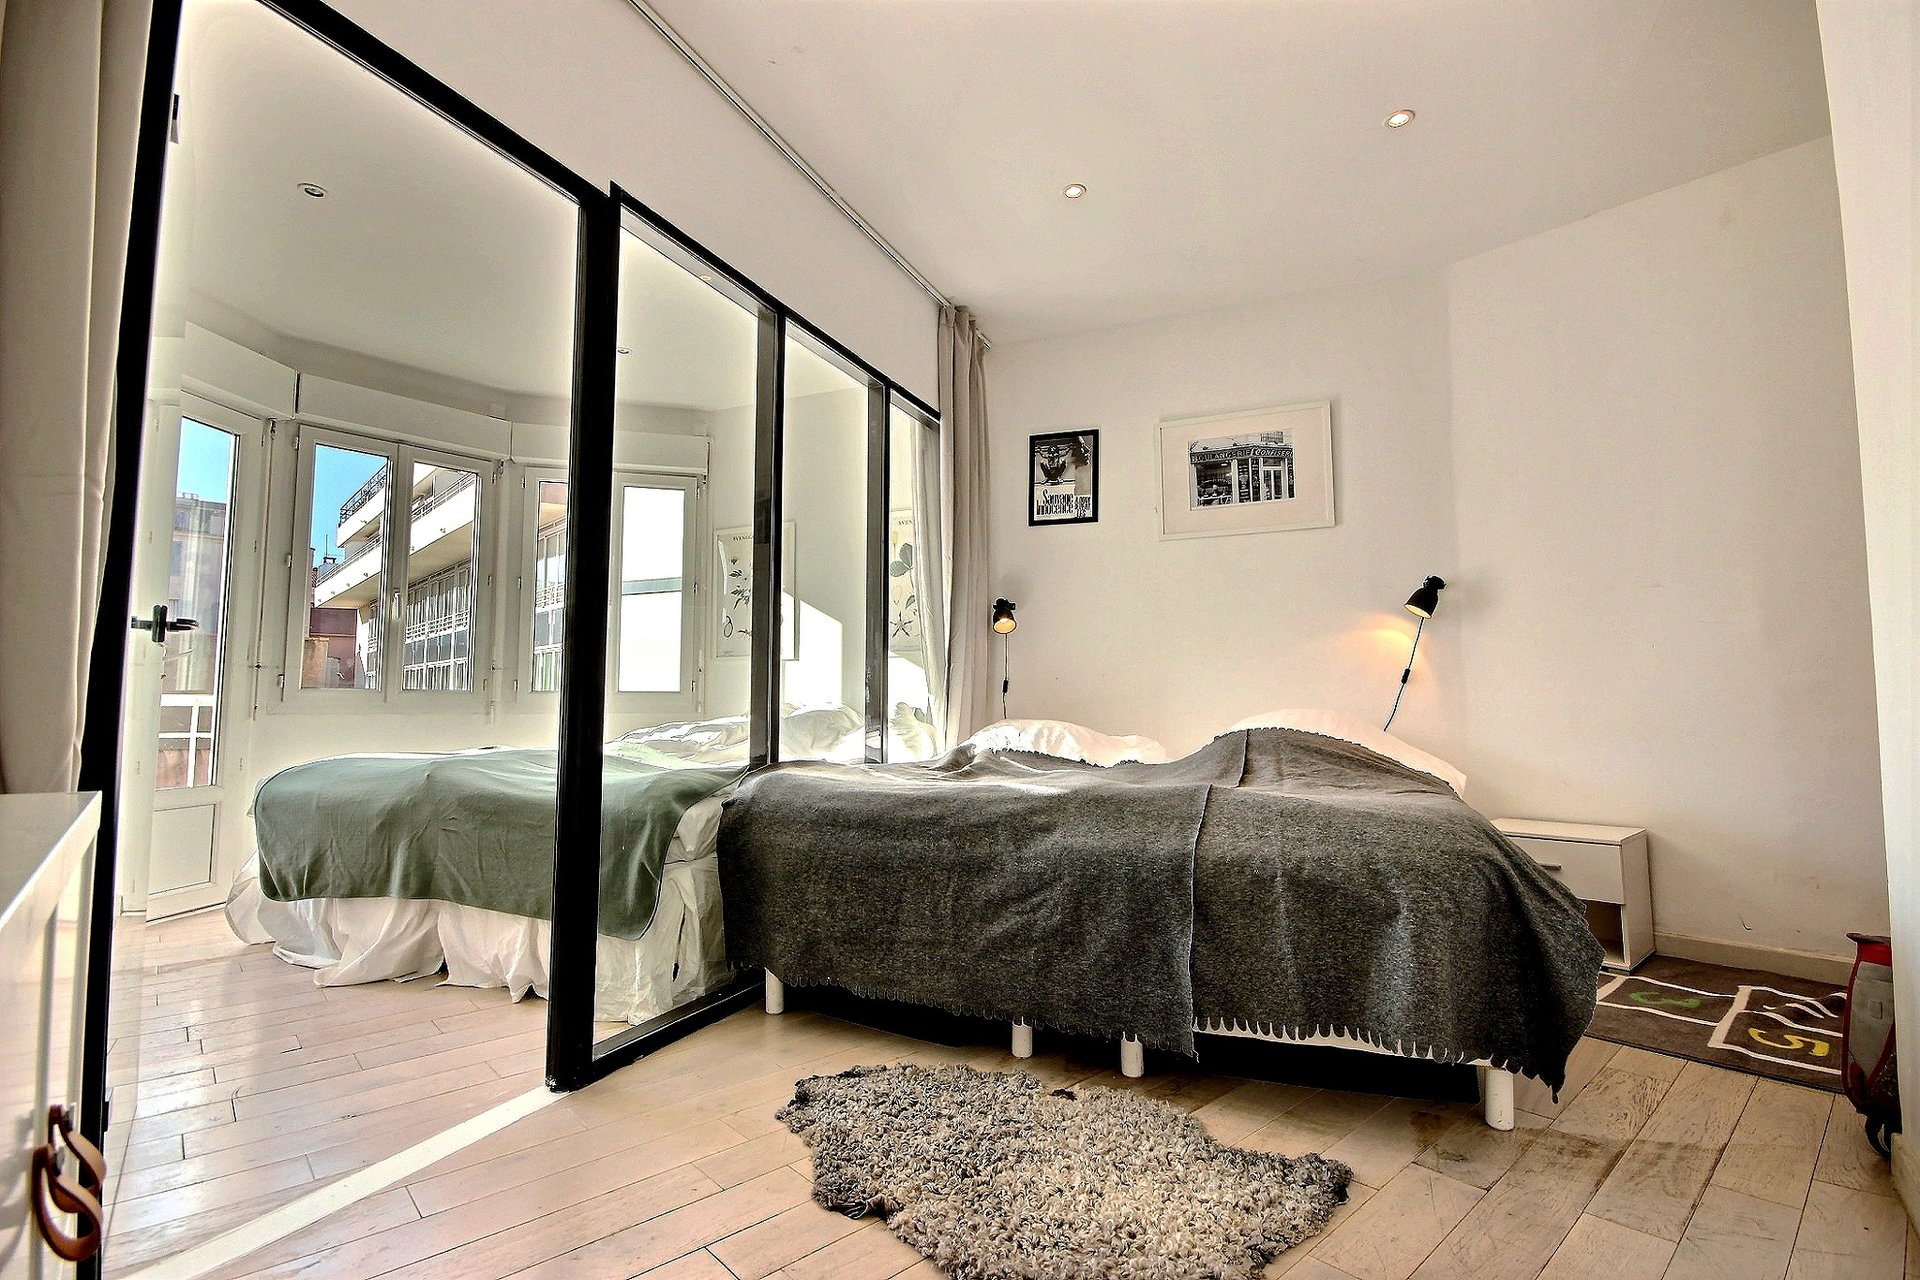 Property for sale in Cannes Banane